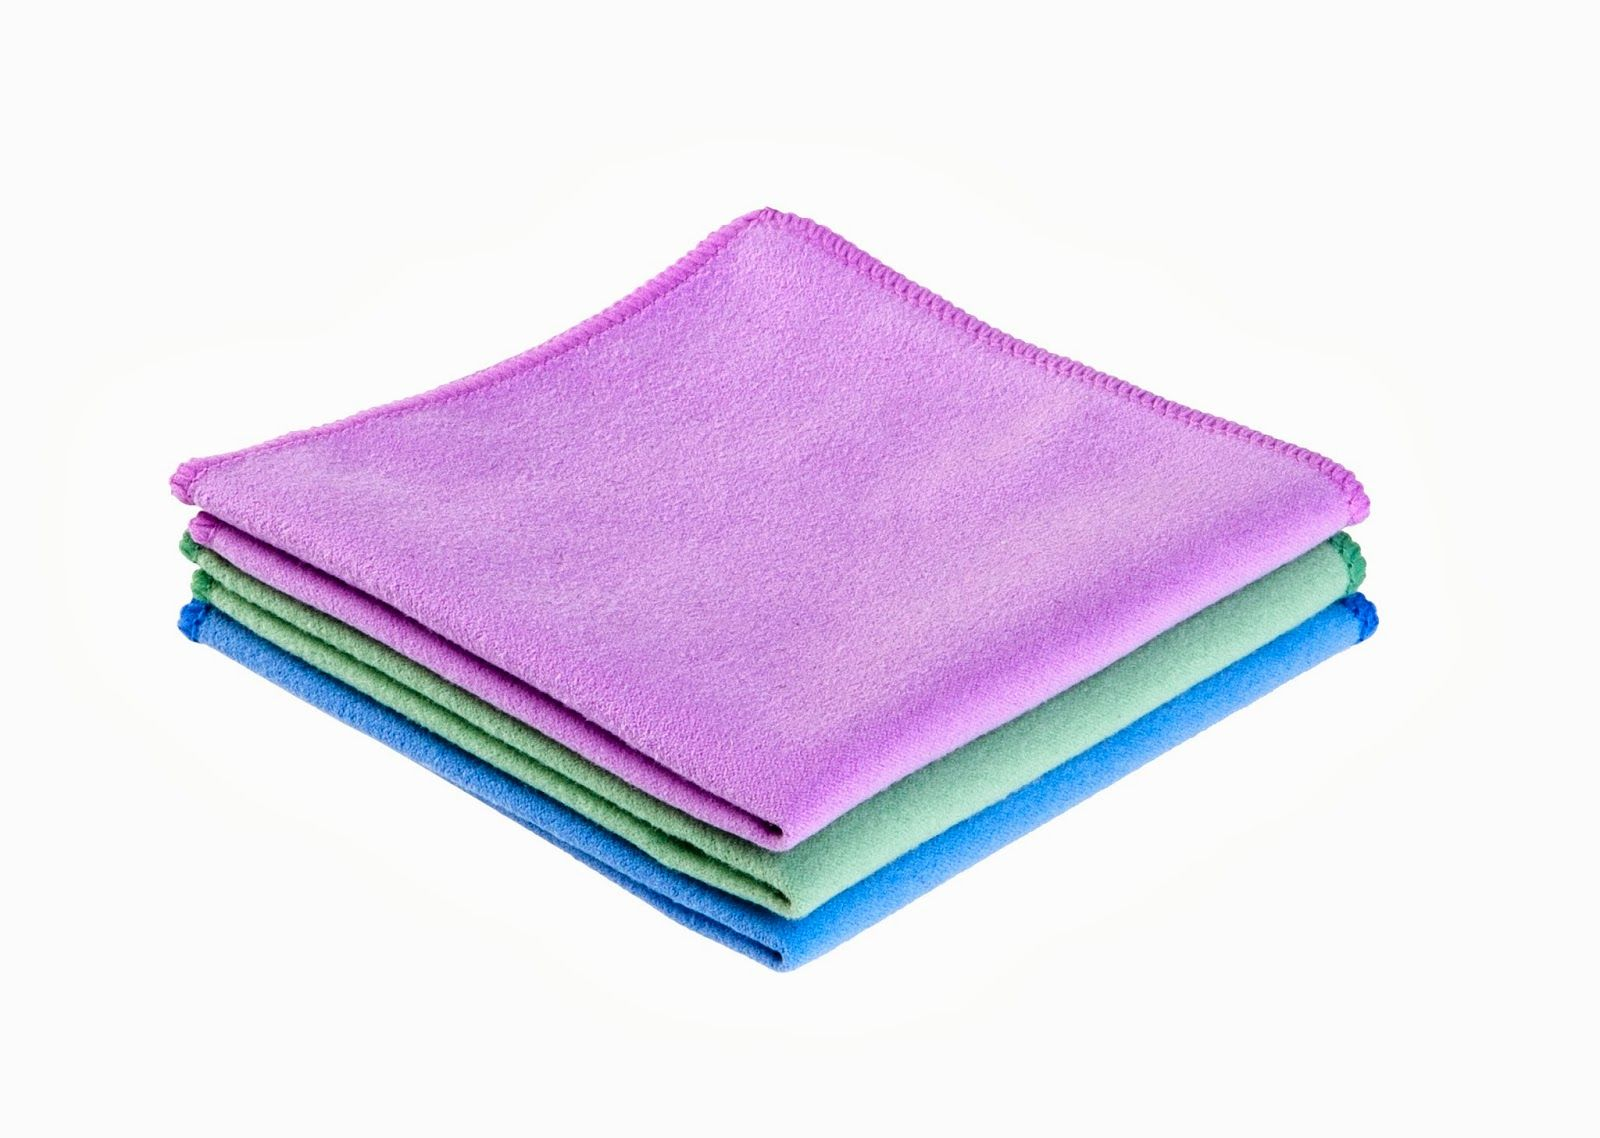 Norwex Body Cloth and Makeup Removal Cloth Remove makeup